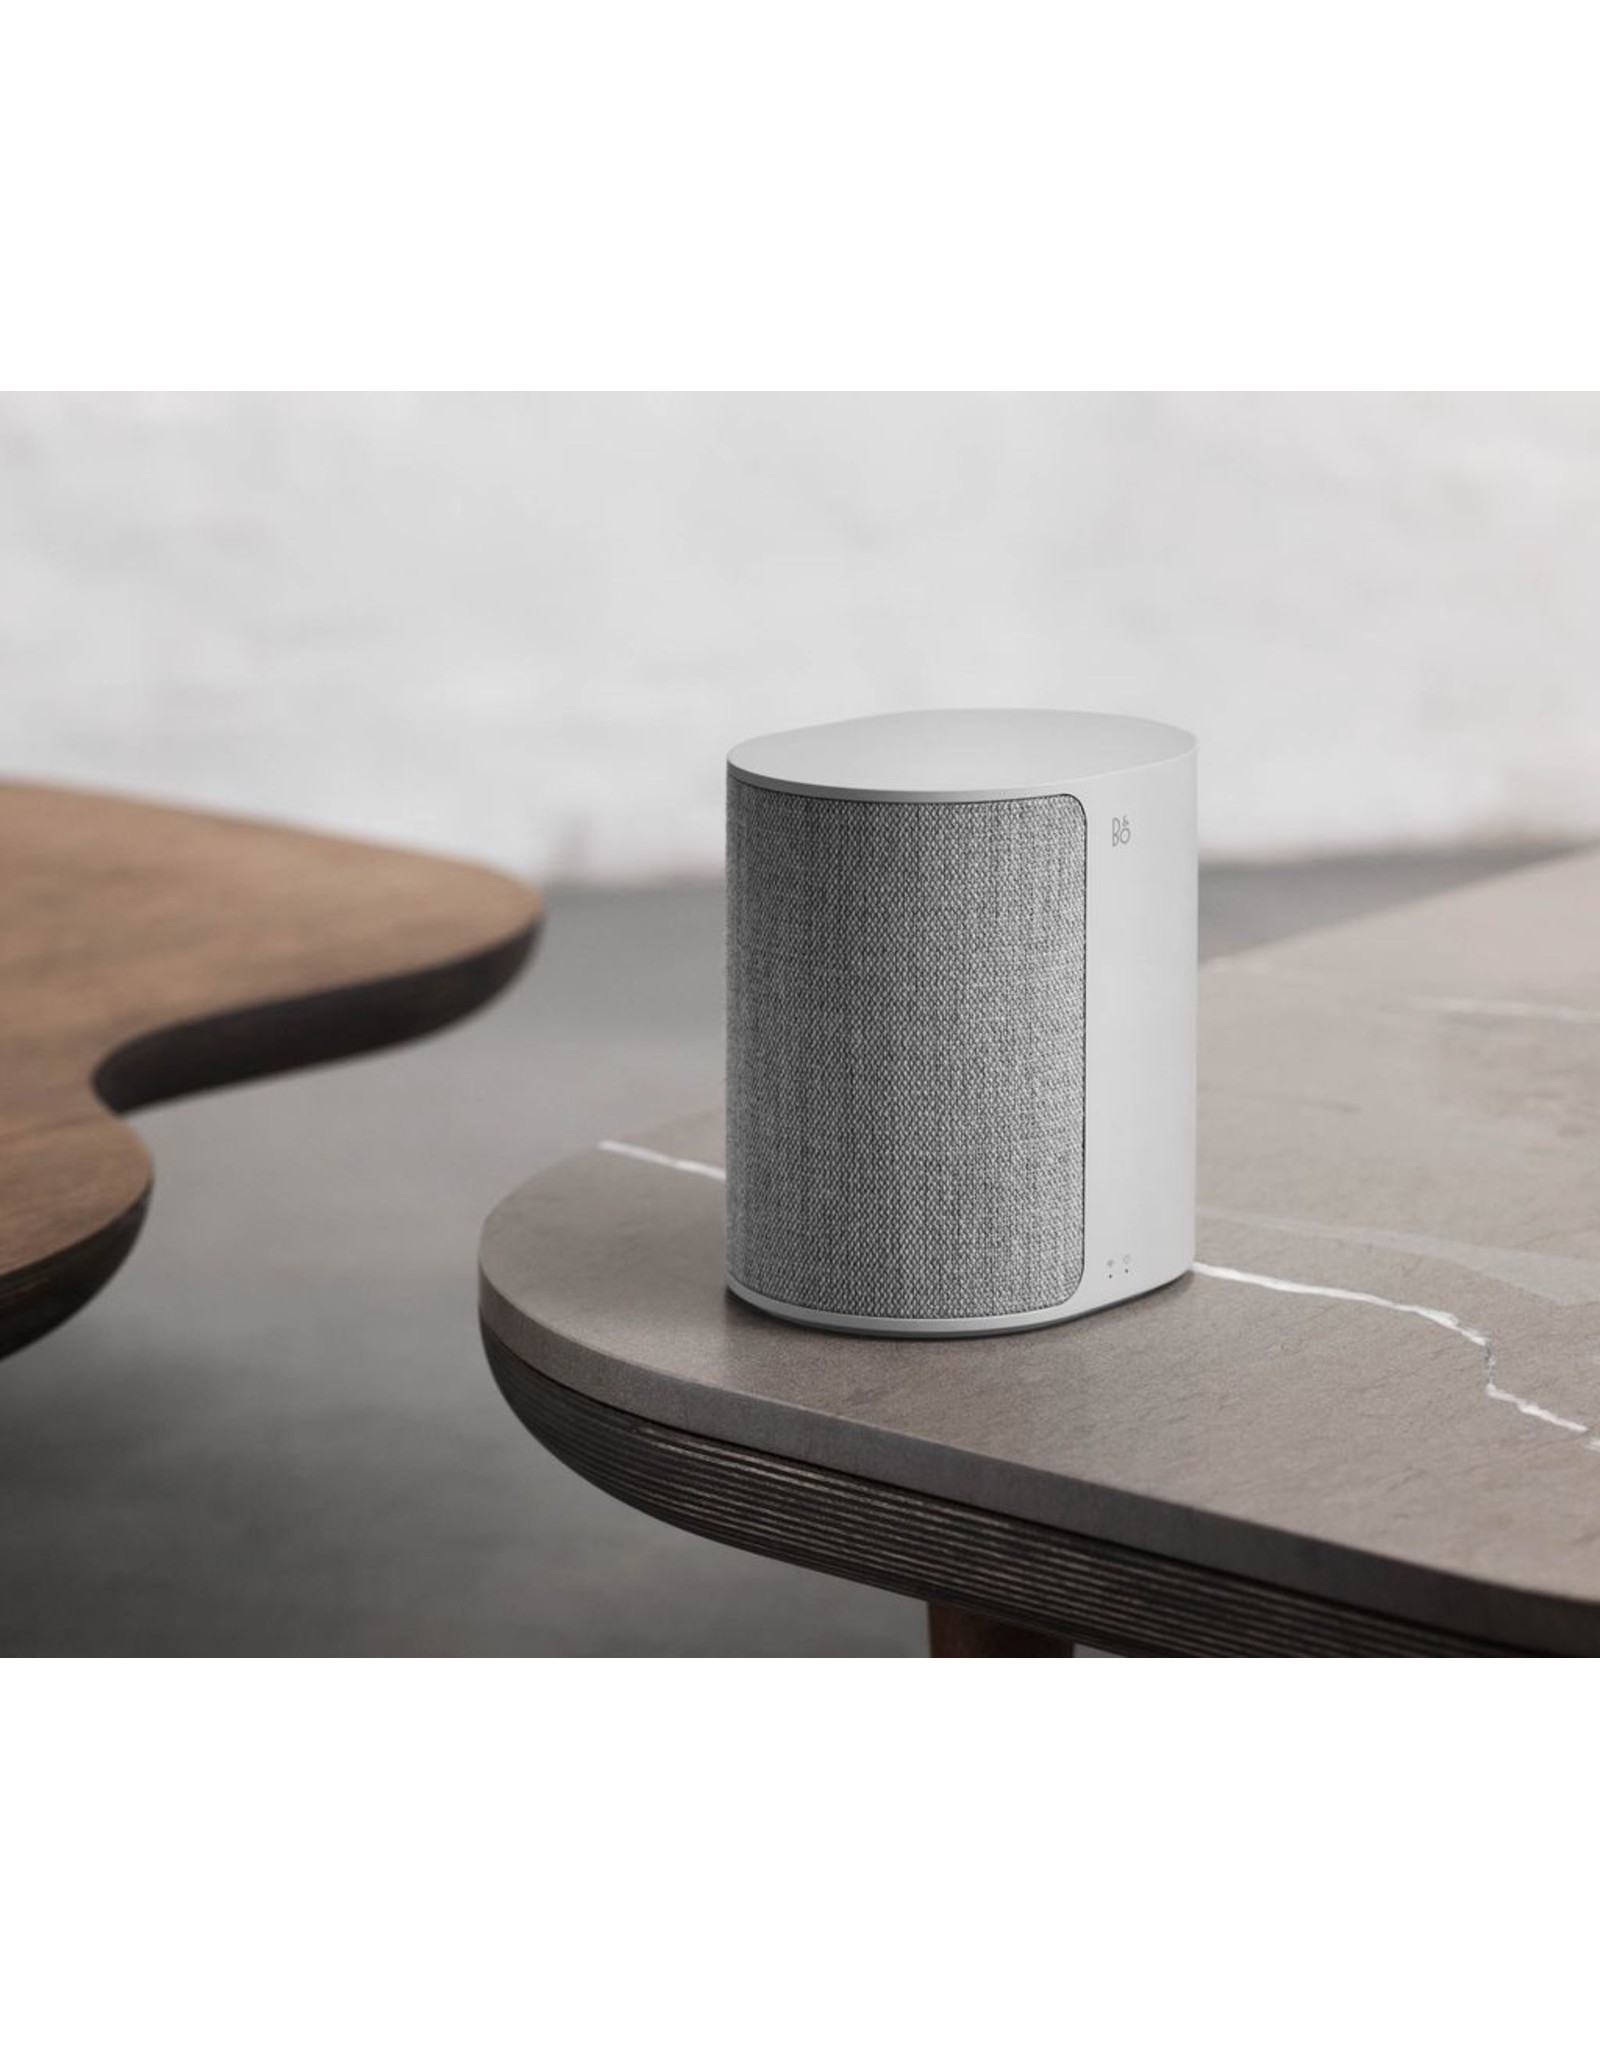 B&O Play Beoplay M3 Silver